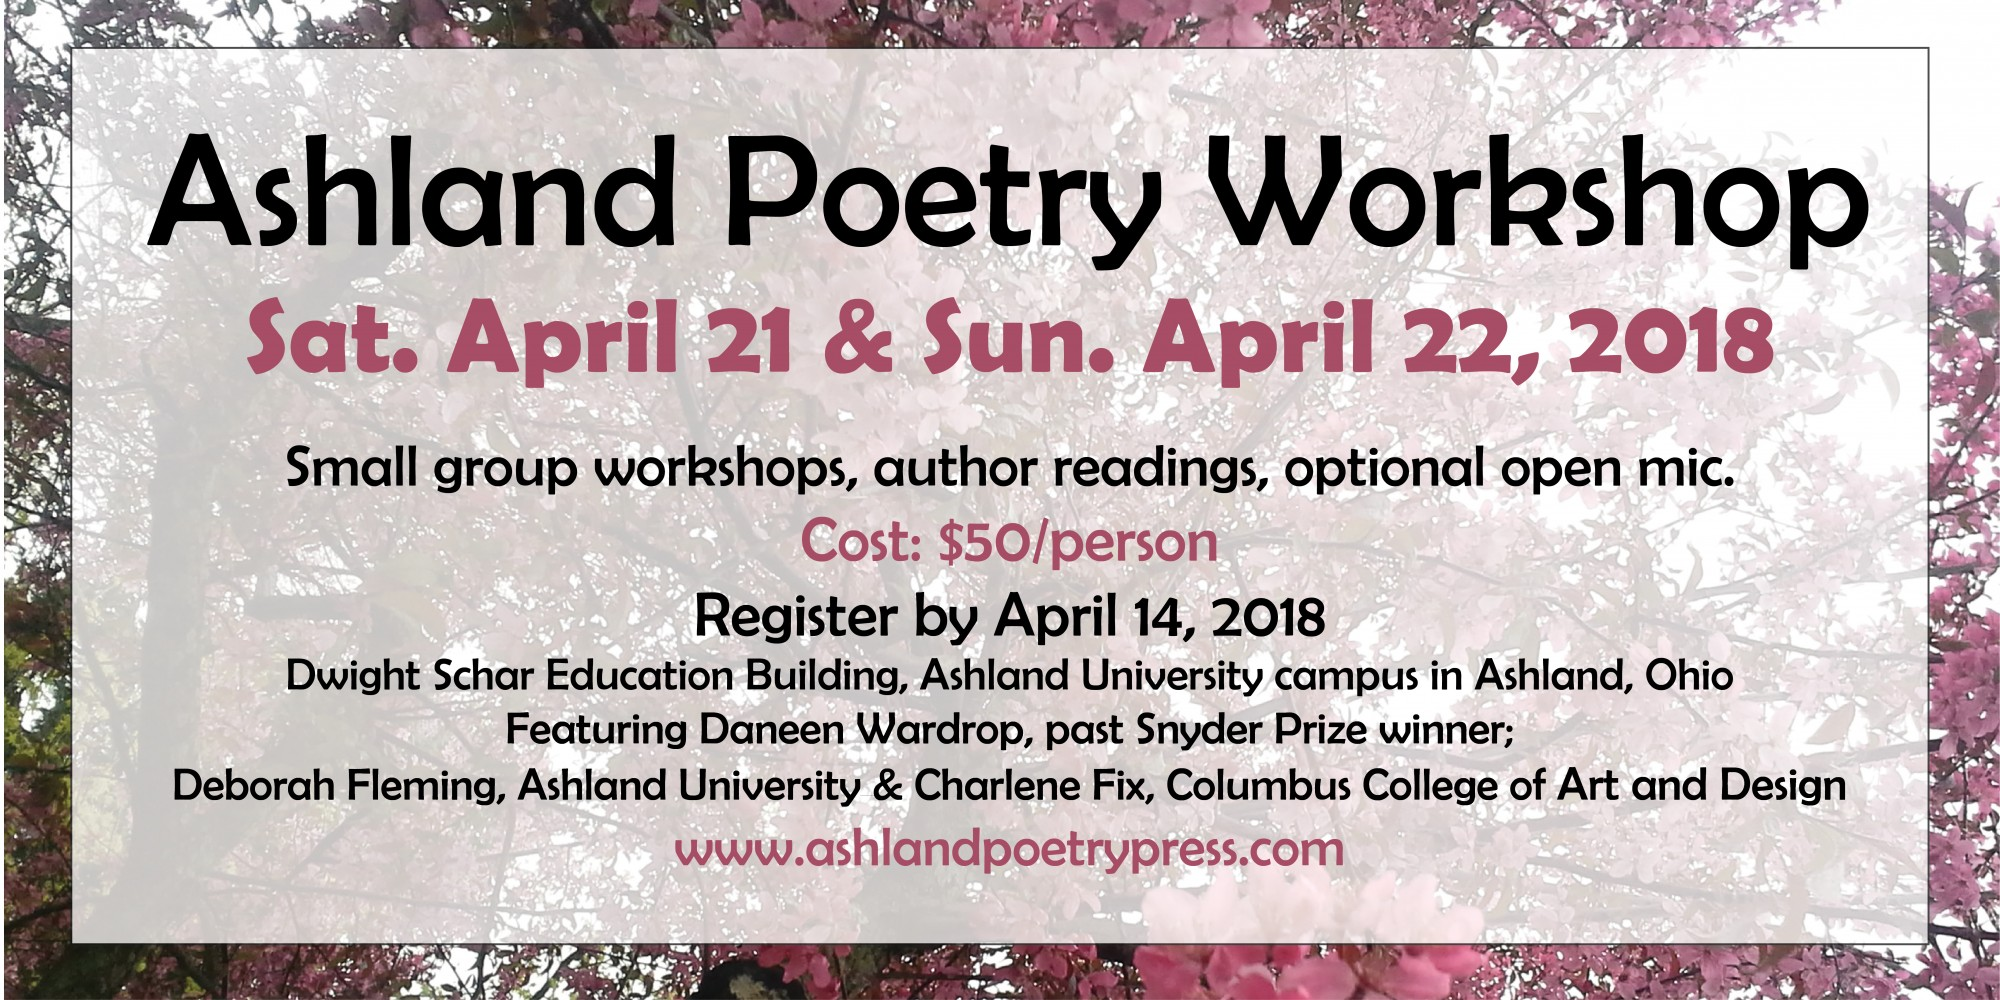 Spring Poetry Workshop Set for April 21 and 22